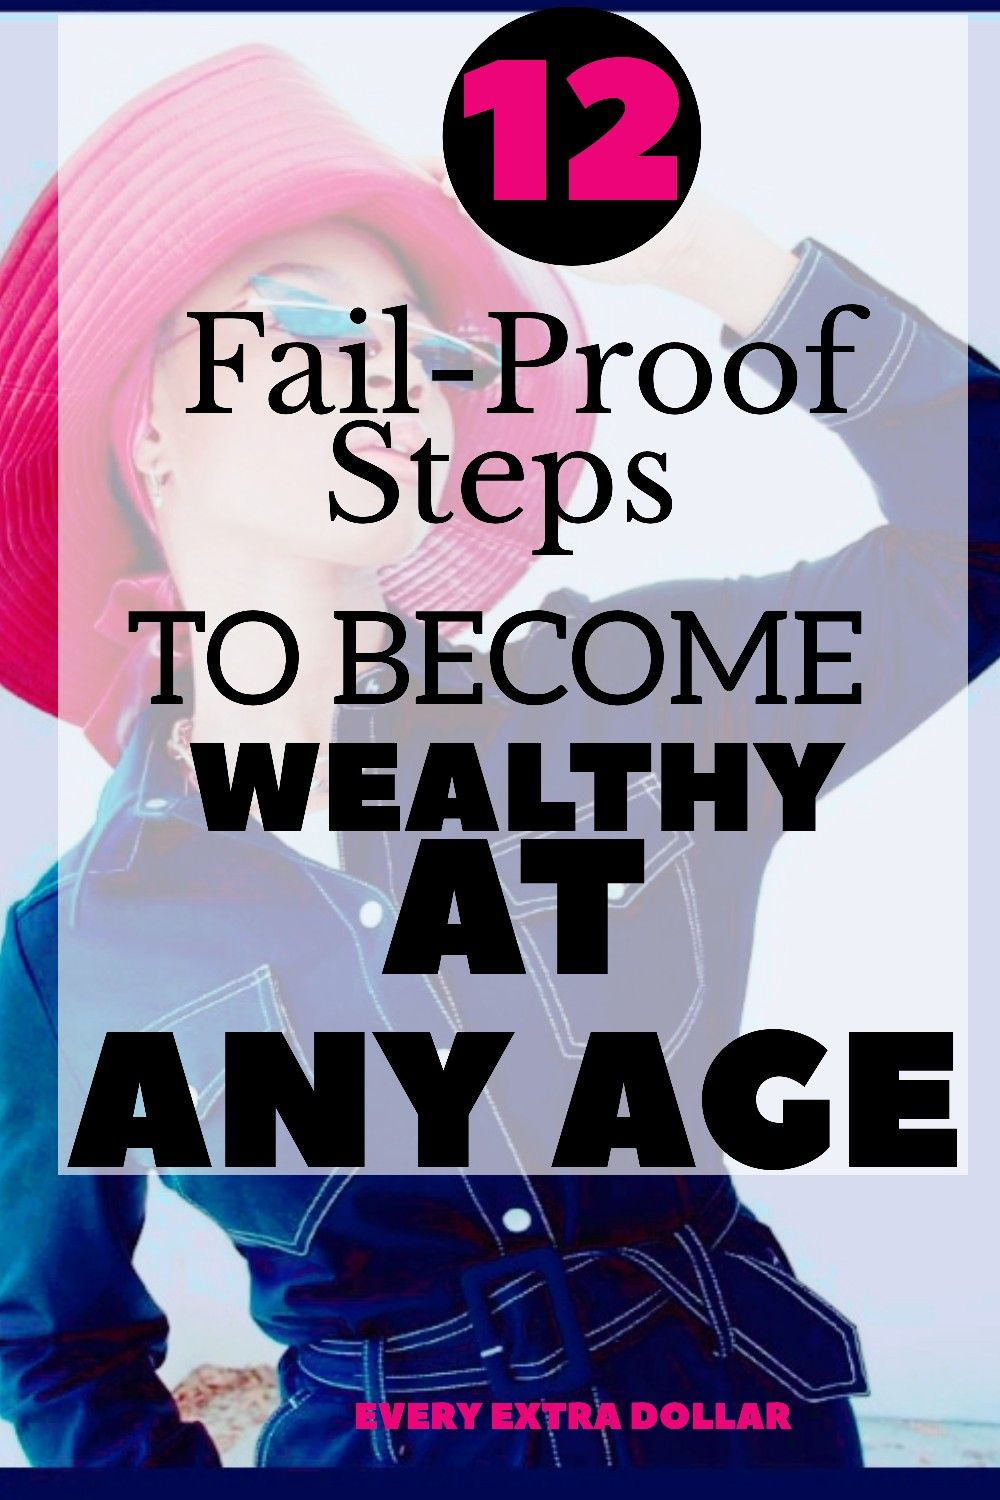 12 FailProof steps to wealthy at any age. in 2020